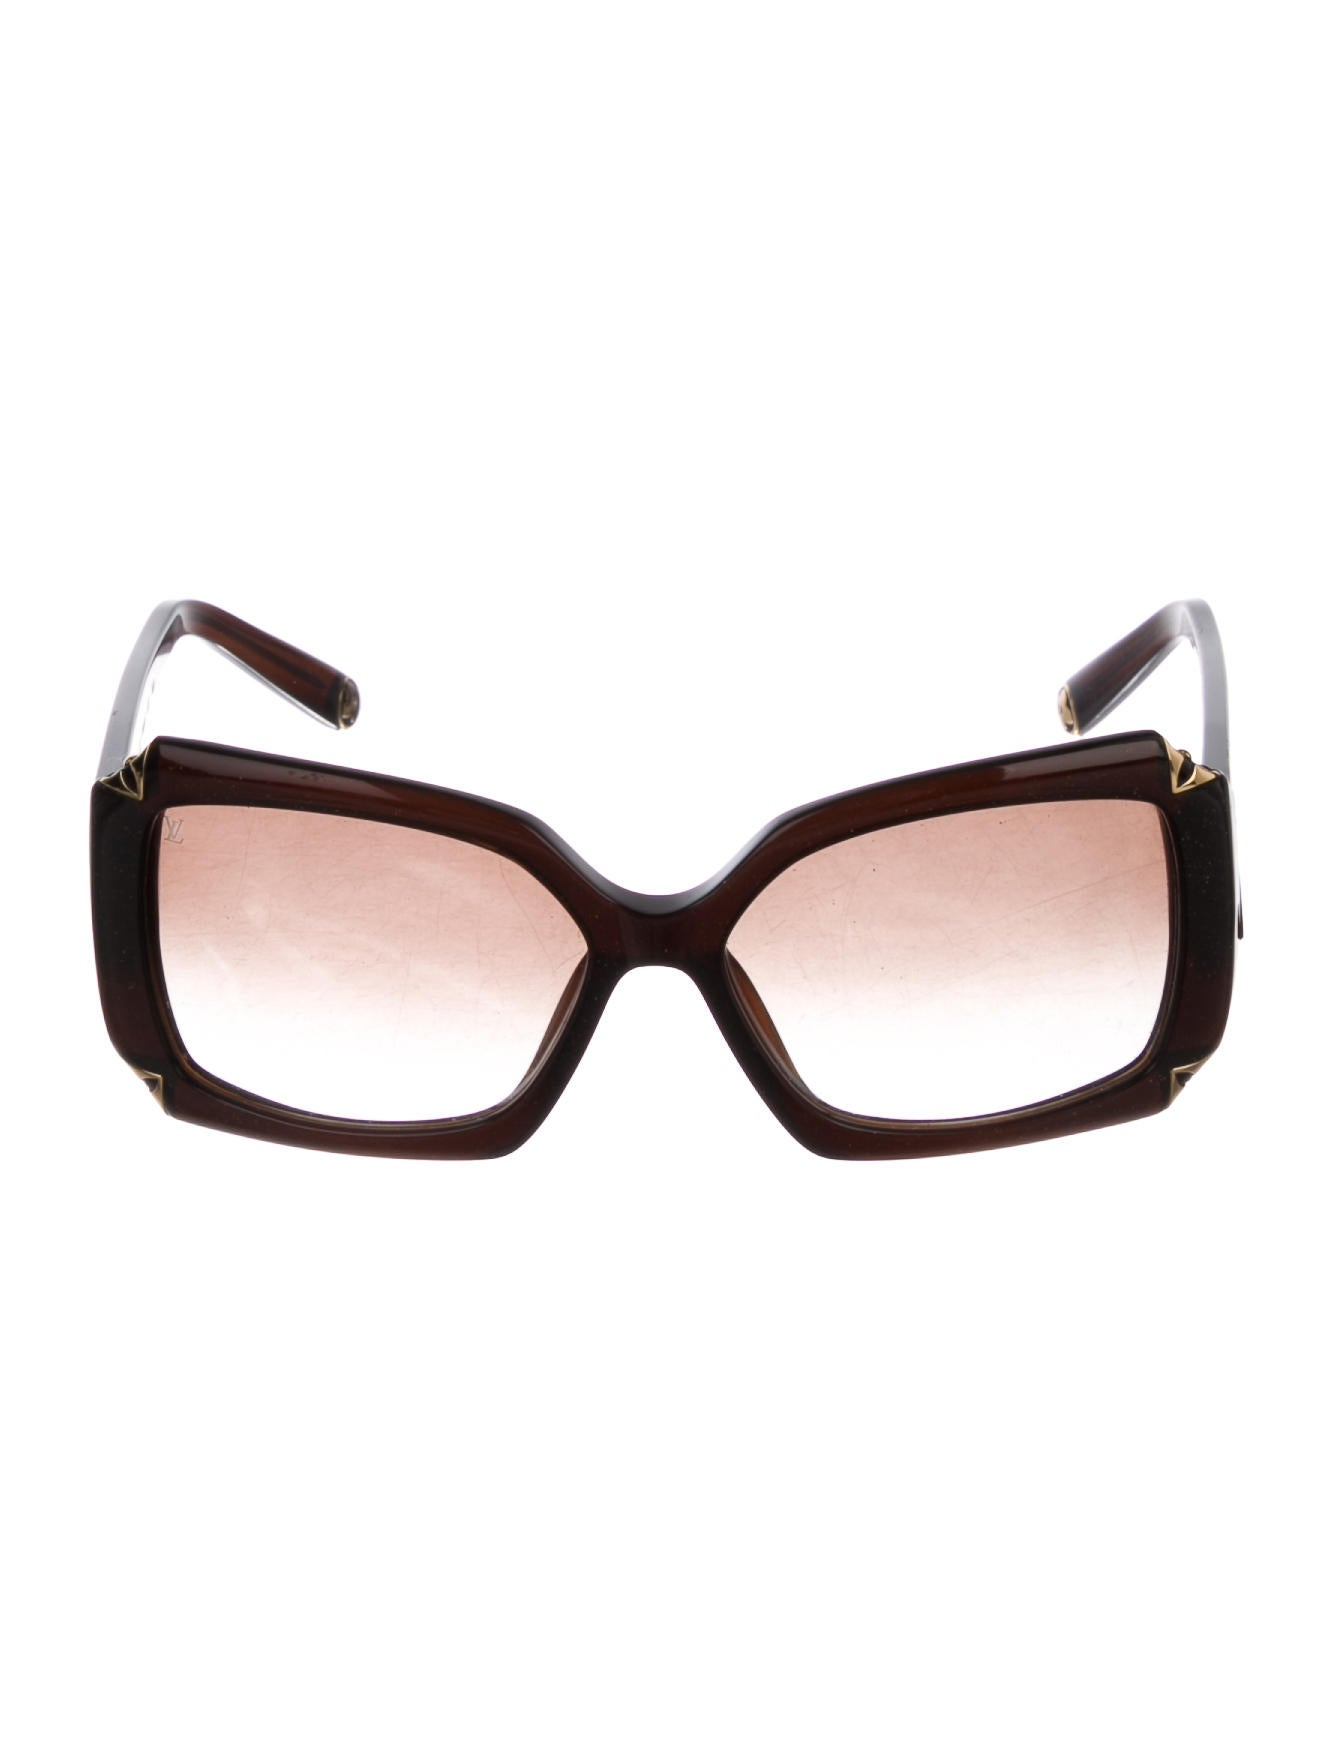 e3b083420c Louis Vuitton Hortensia Cat-Eye Sunglasses - Accessories - LOU171832 ...